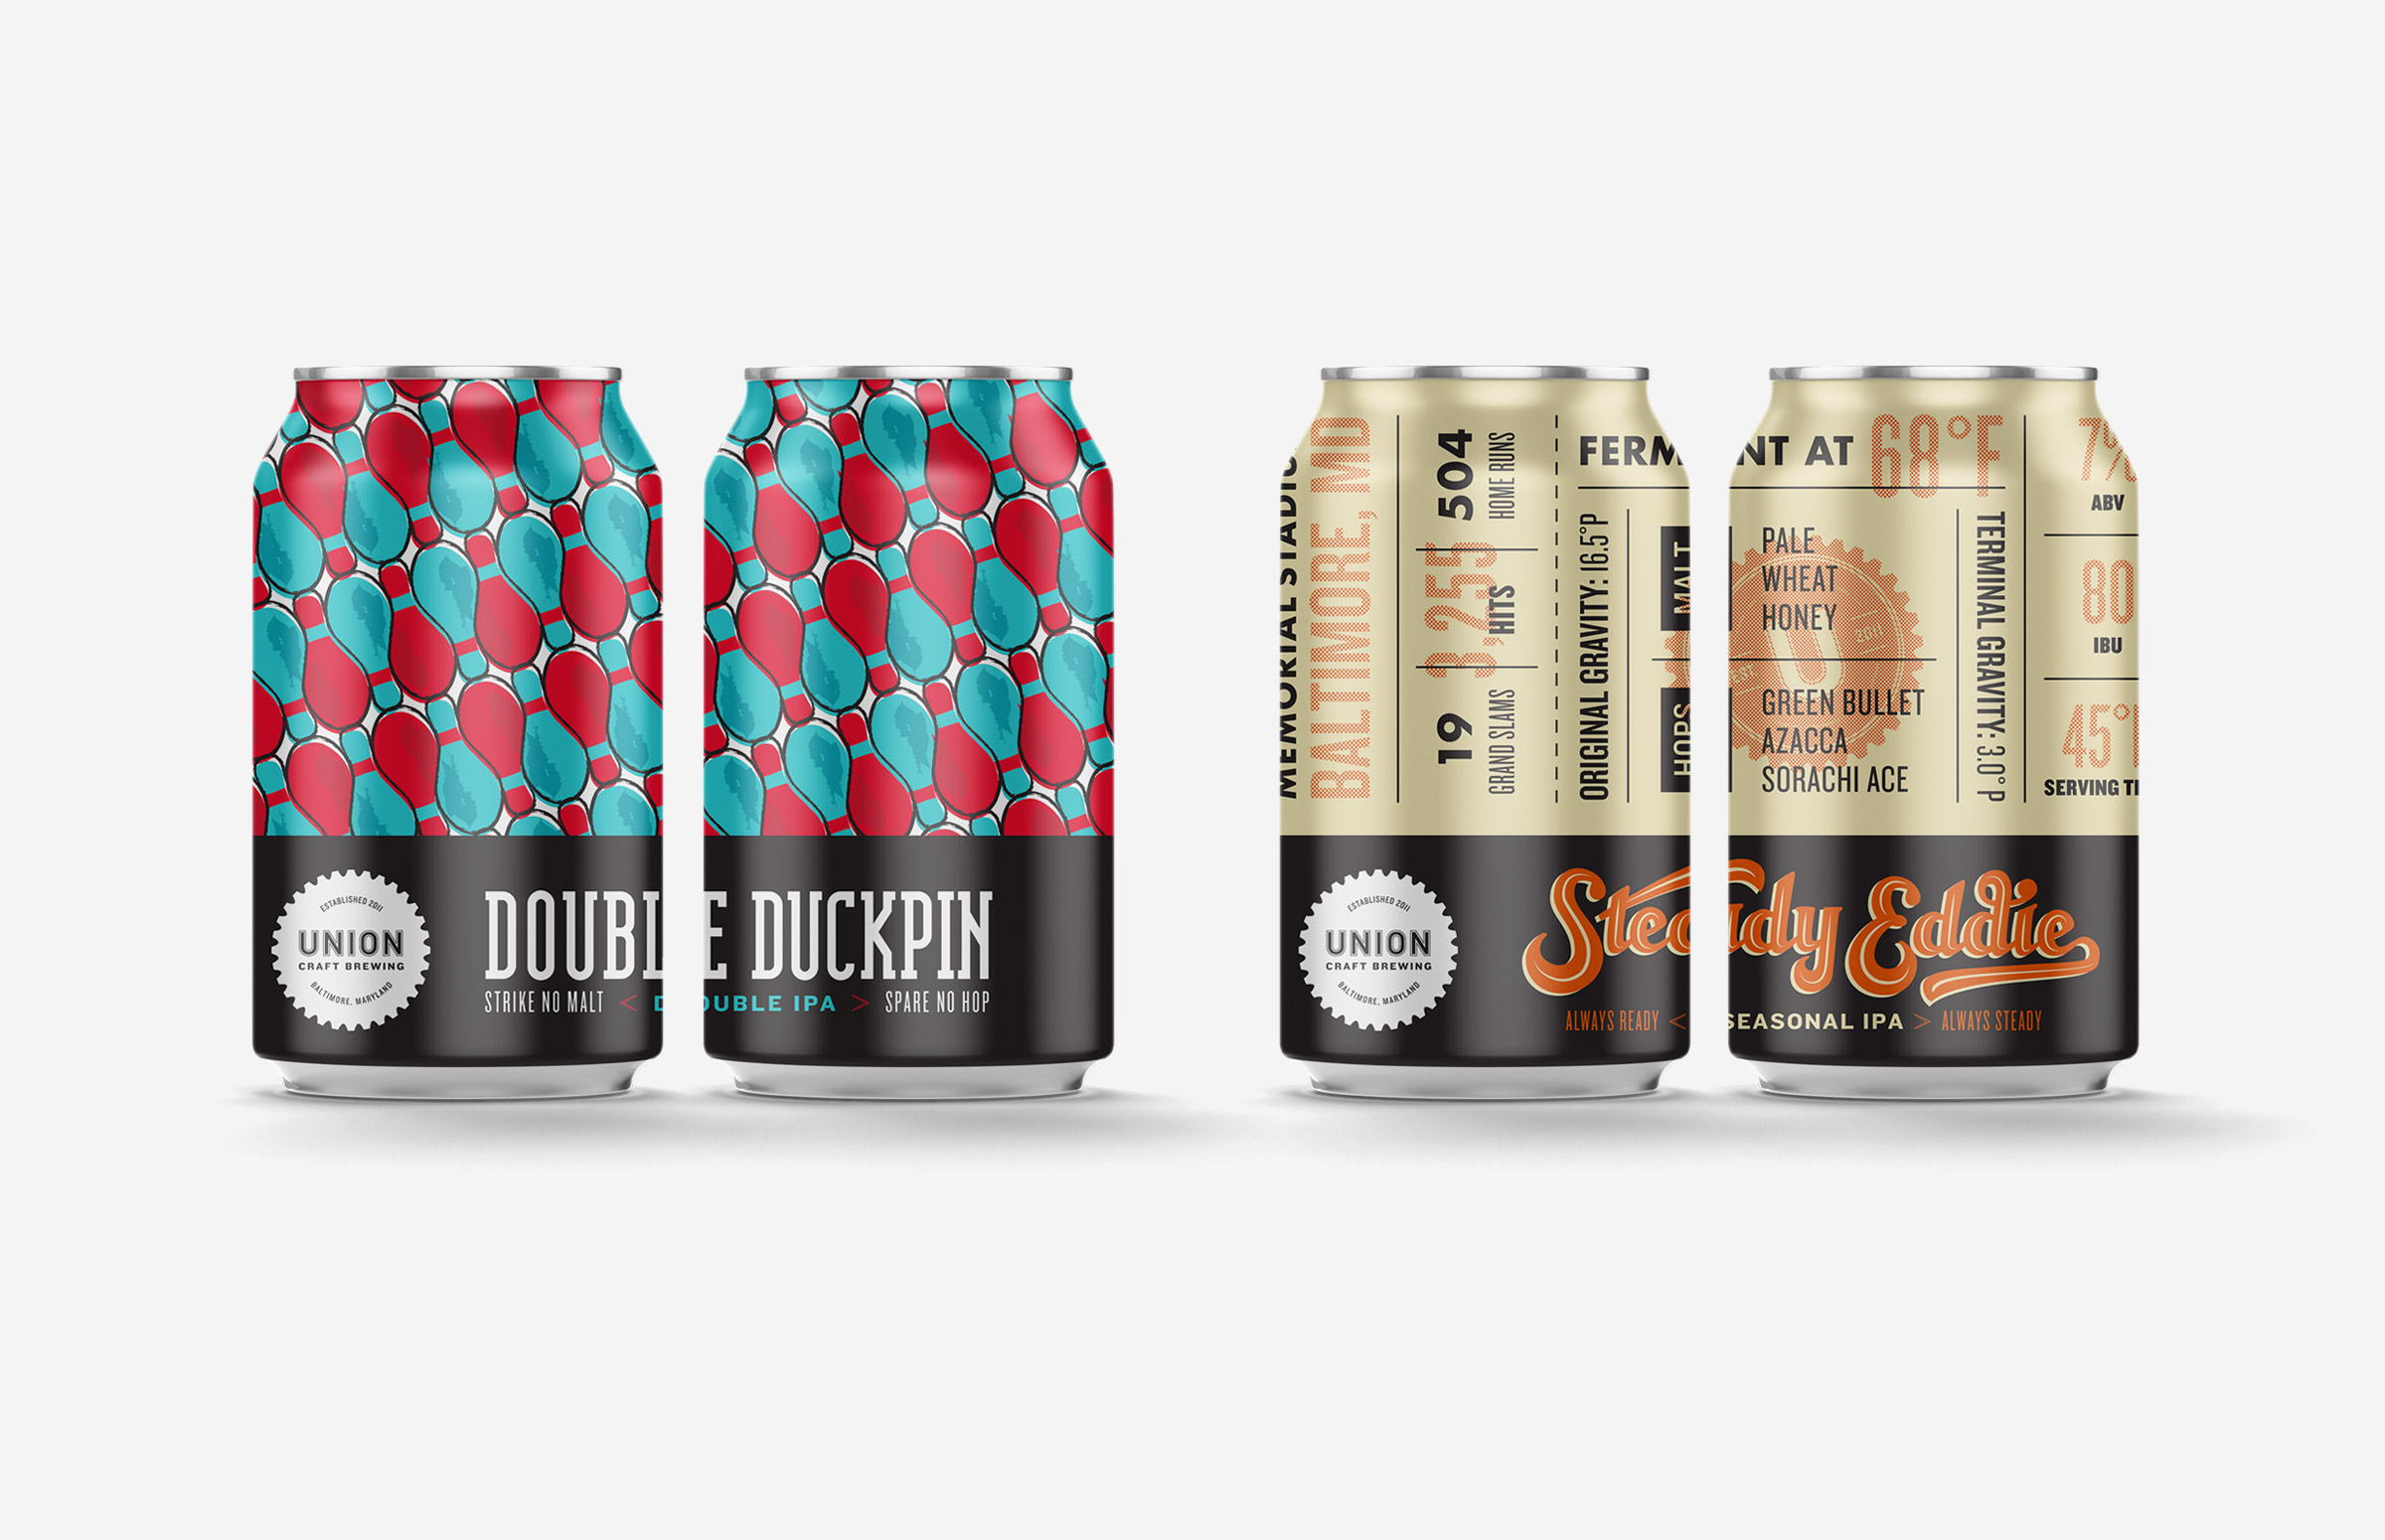 Union Craft Brewing: Seasonal IPA Beer Can Designs